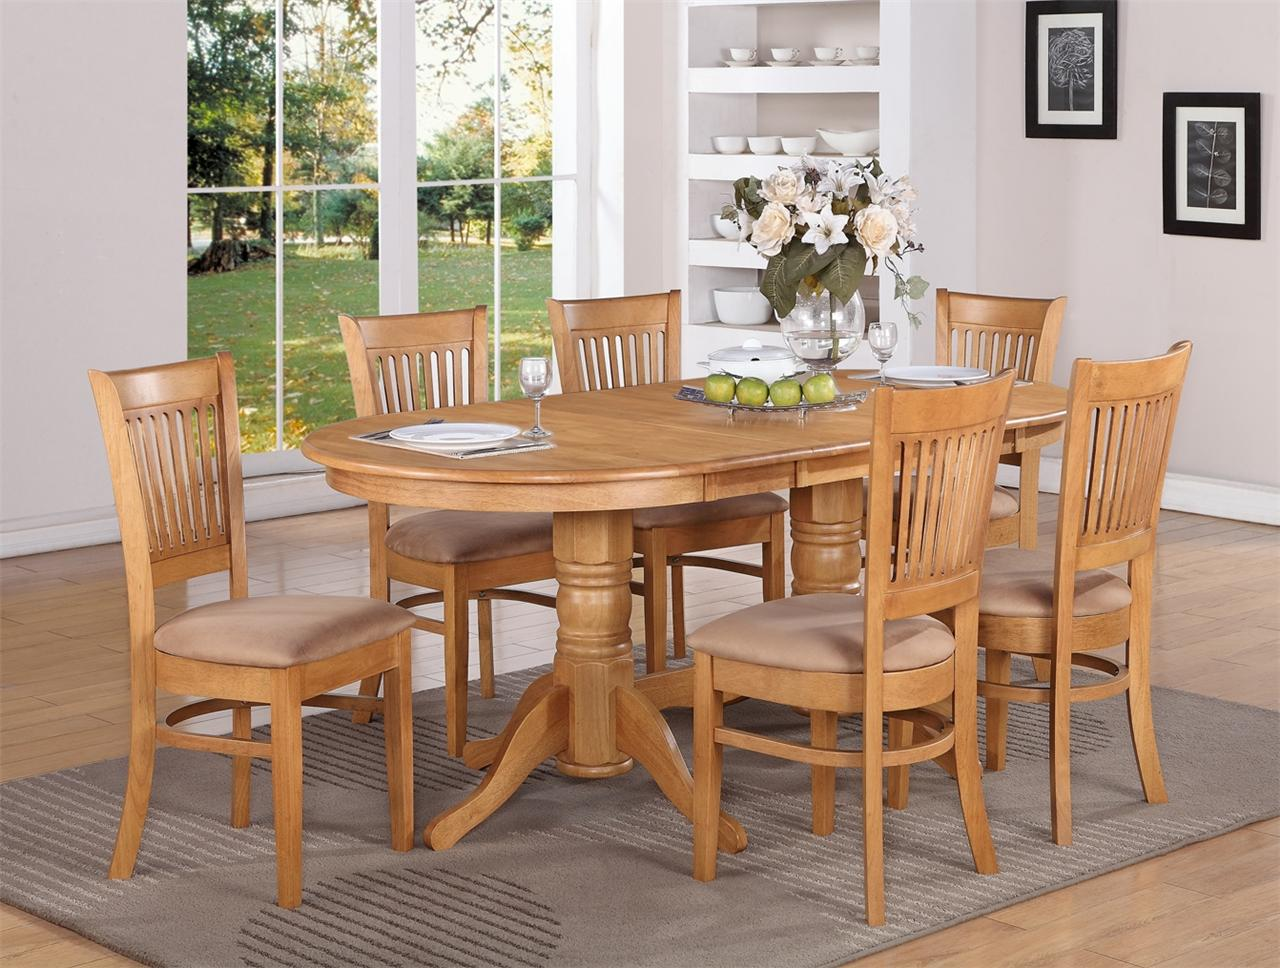 9 pc vancouver oval dinette kitchen dining set table w 8 On oak dining room table